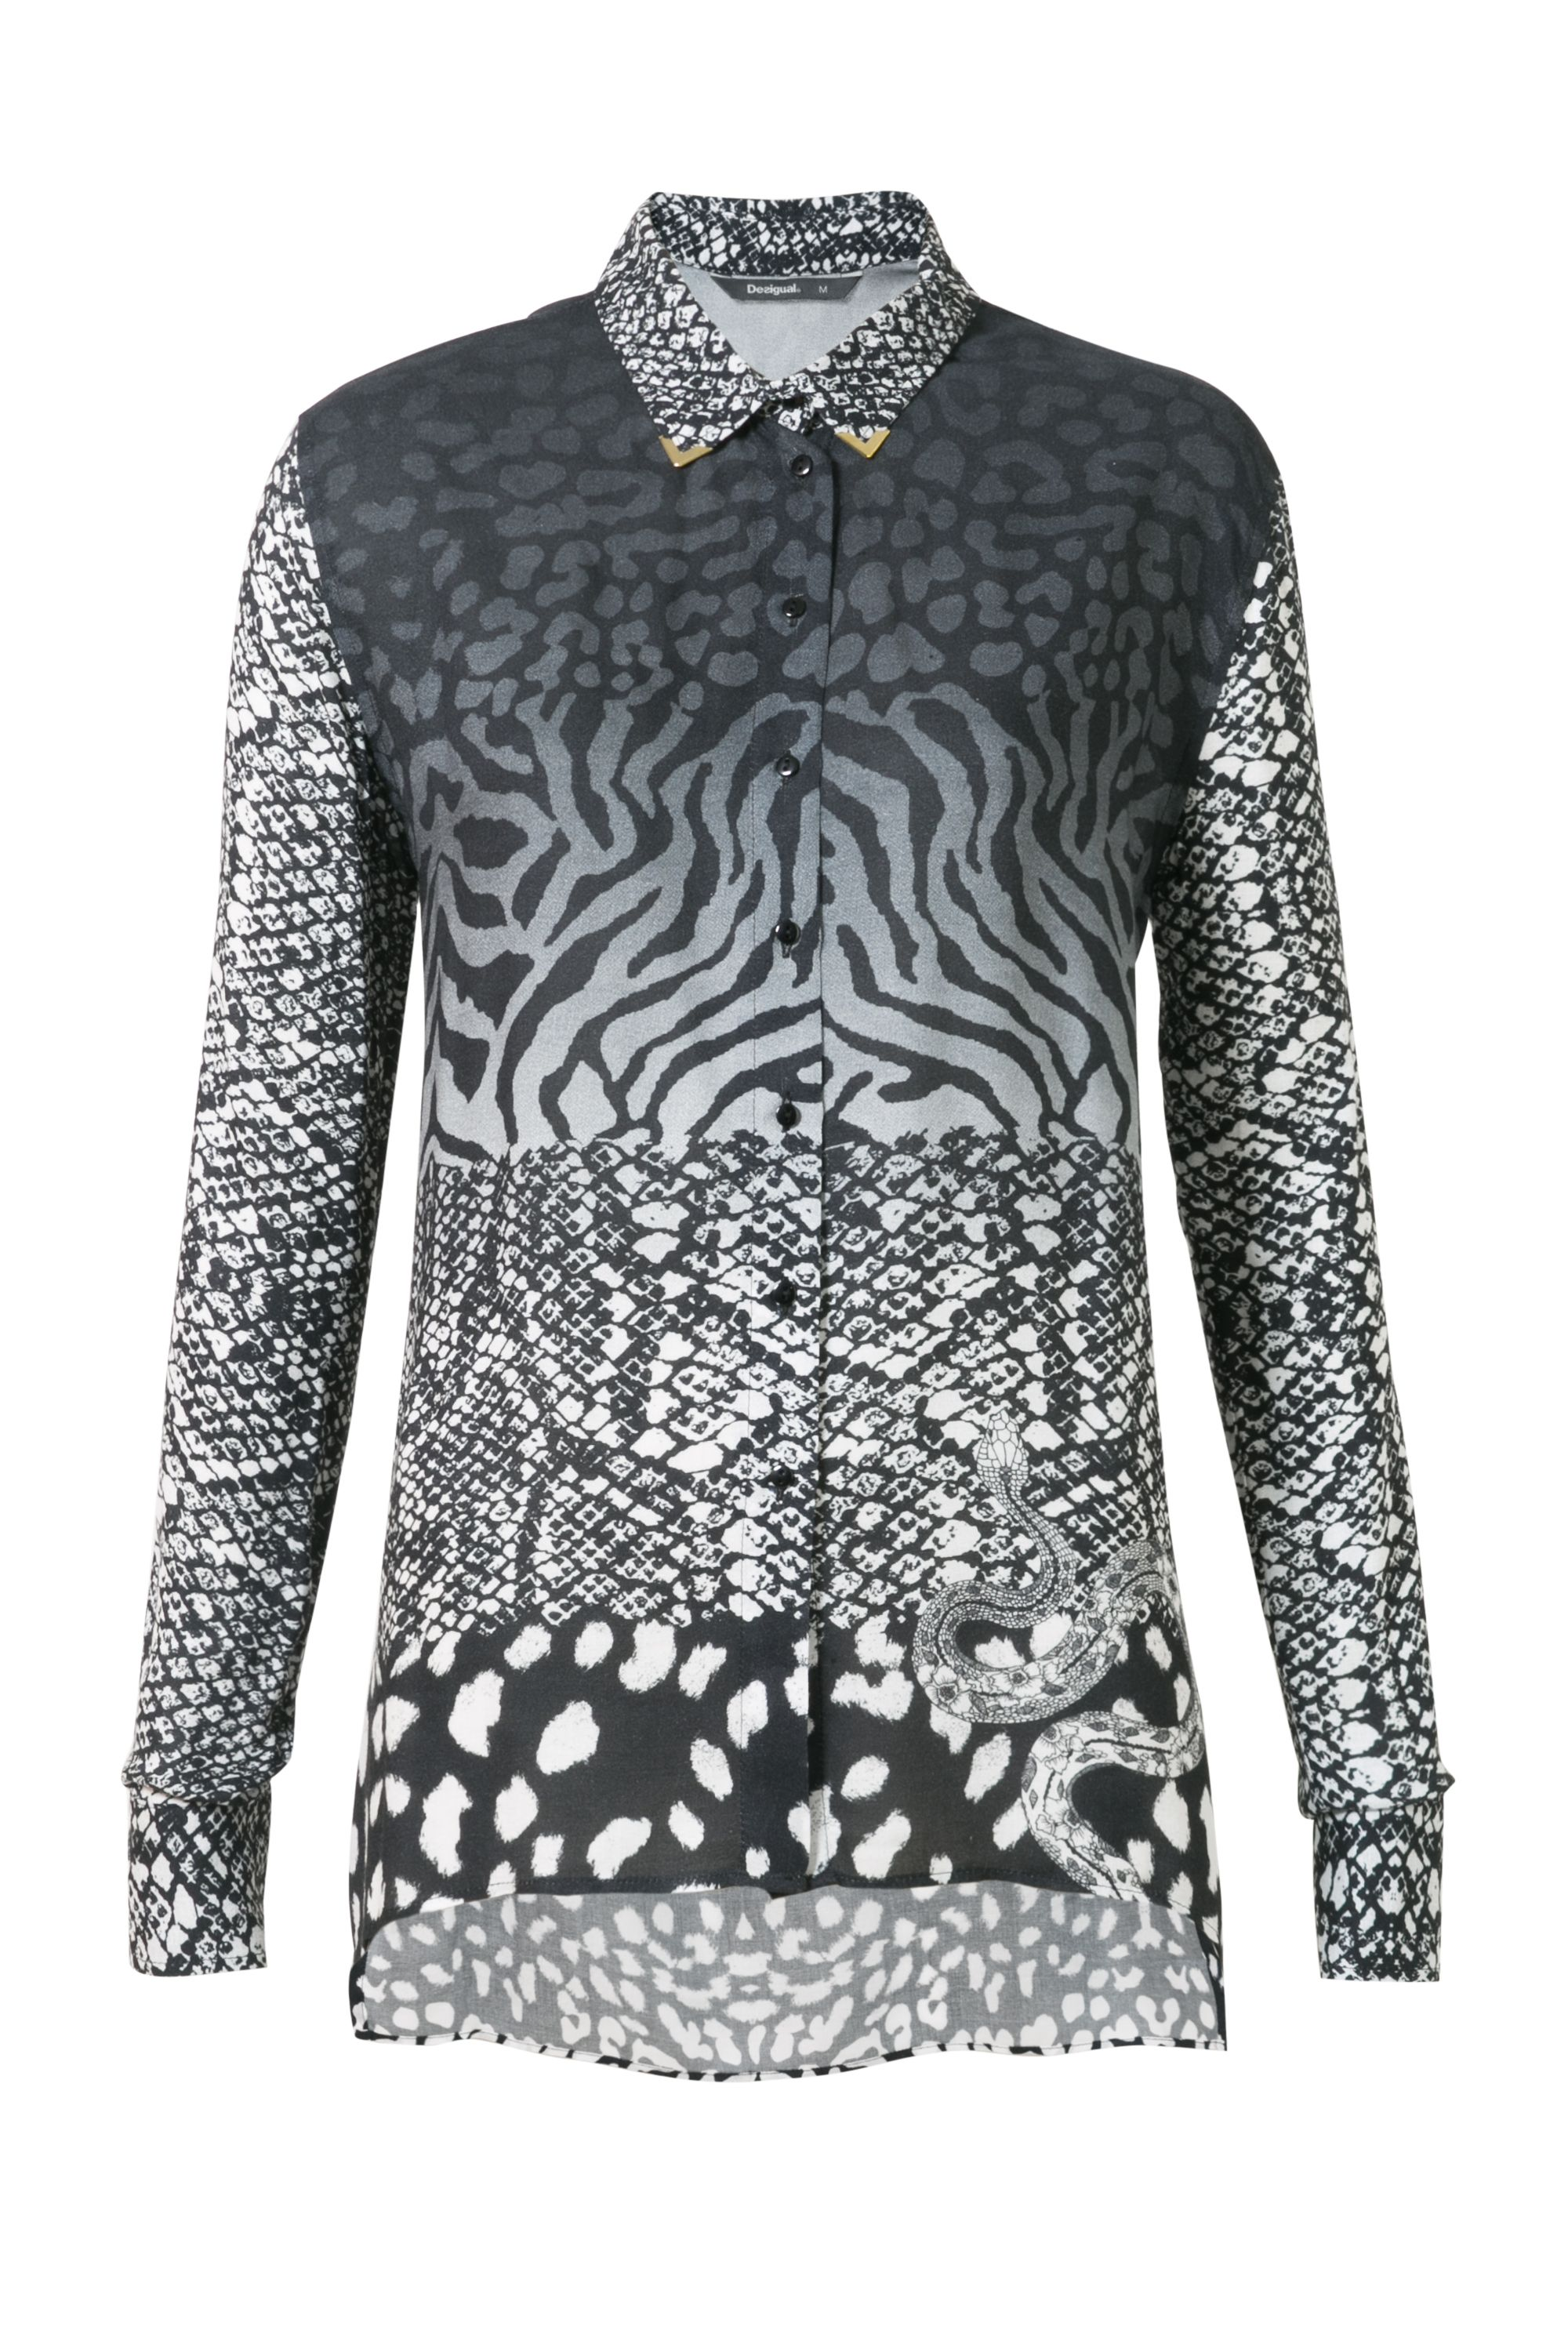 Desigual Shirt Lena, Black